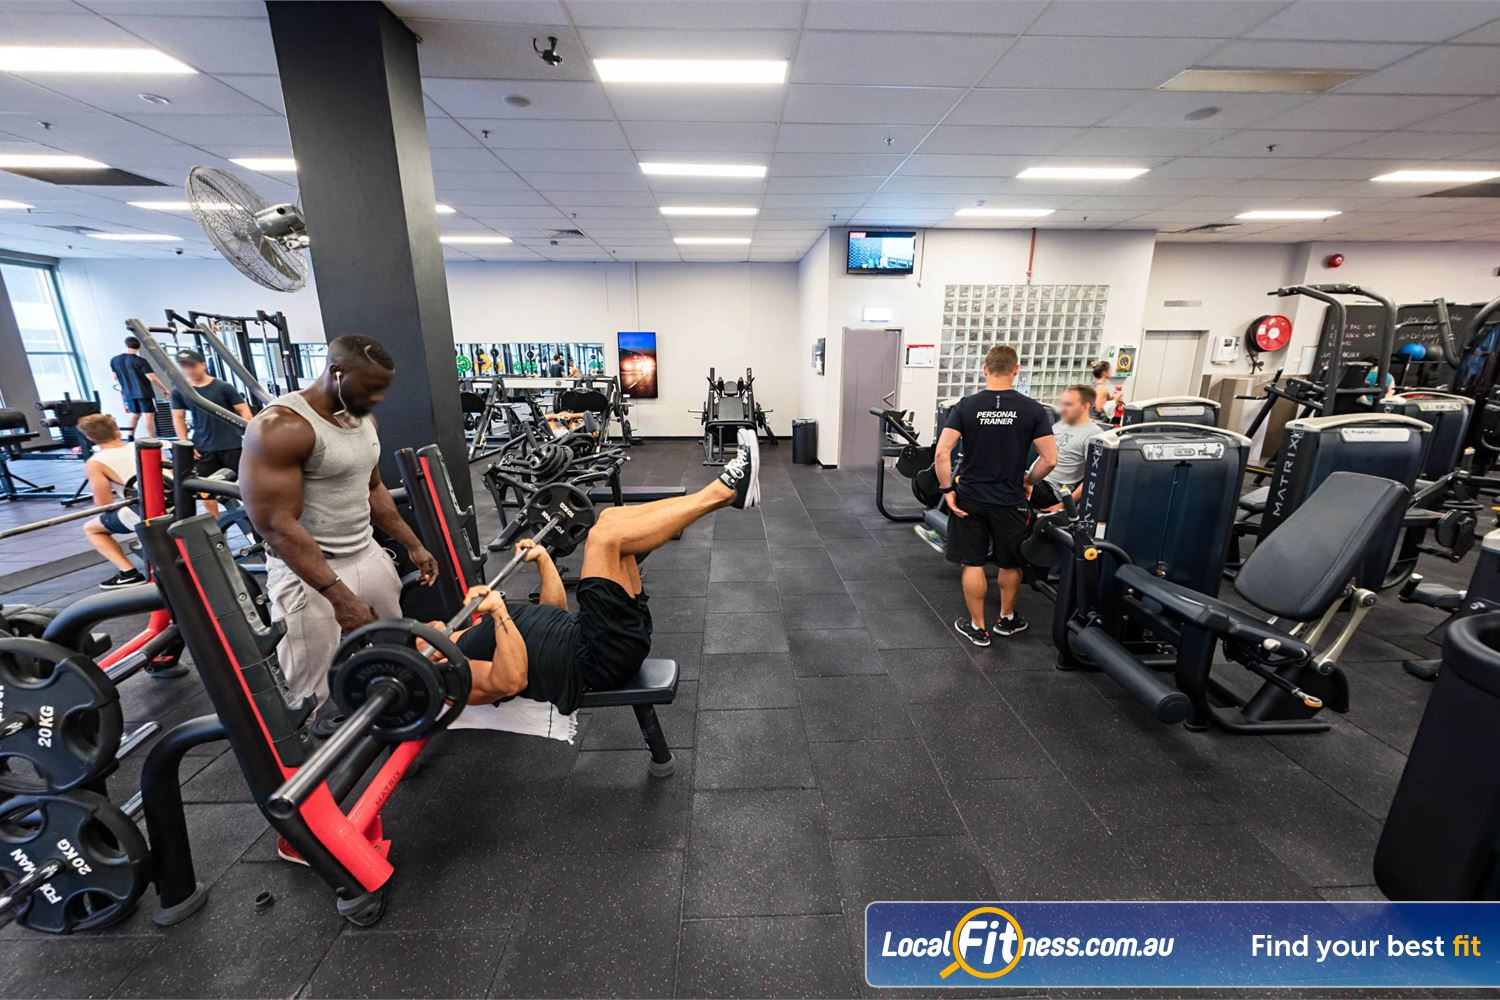 Fitness First Platinum Spring St Bondi Junction Our Bondi gym provides heavy duty benches and plate-loading machines.